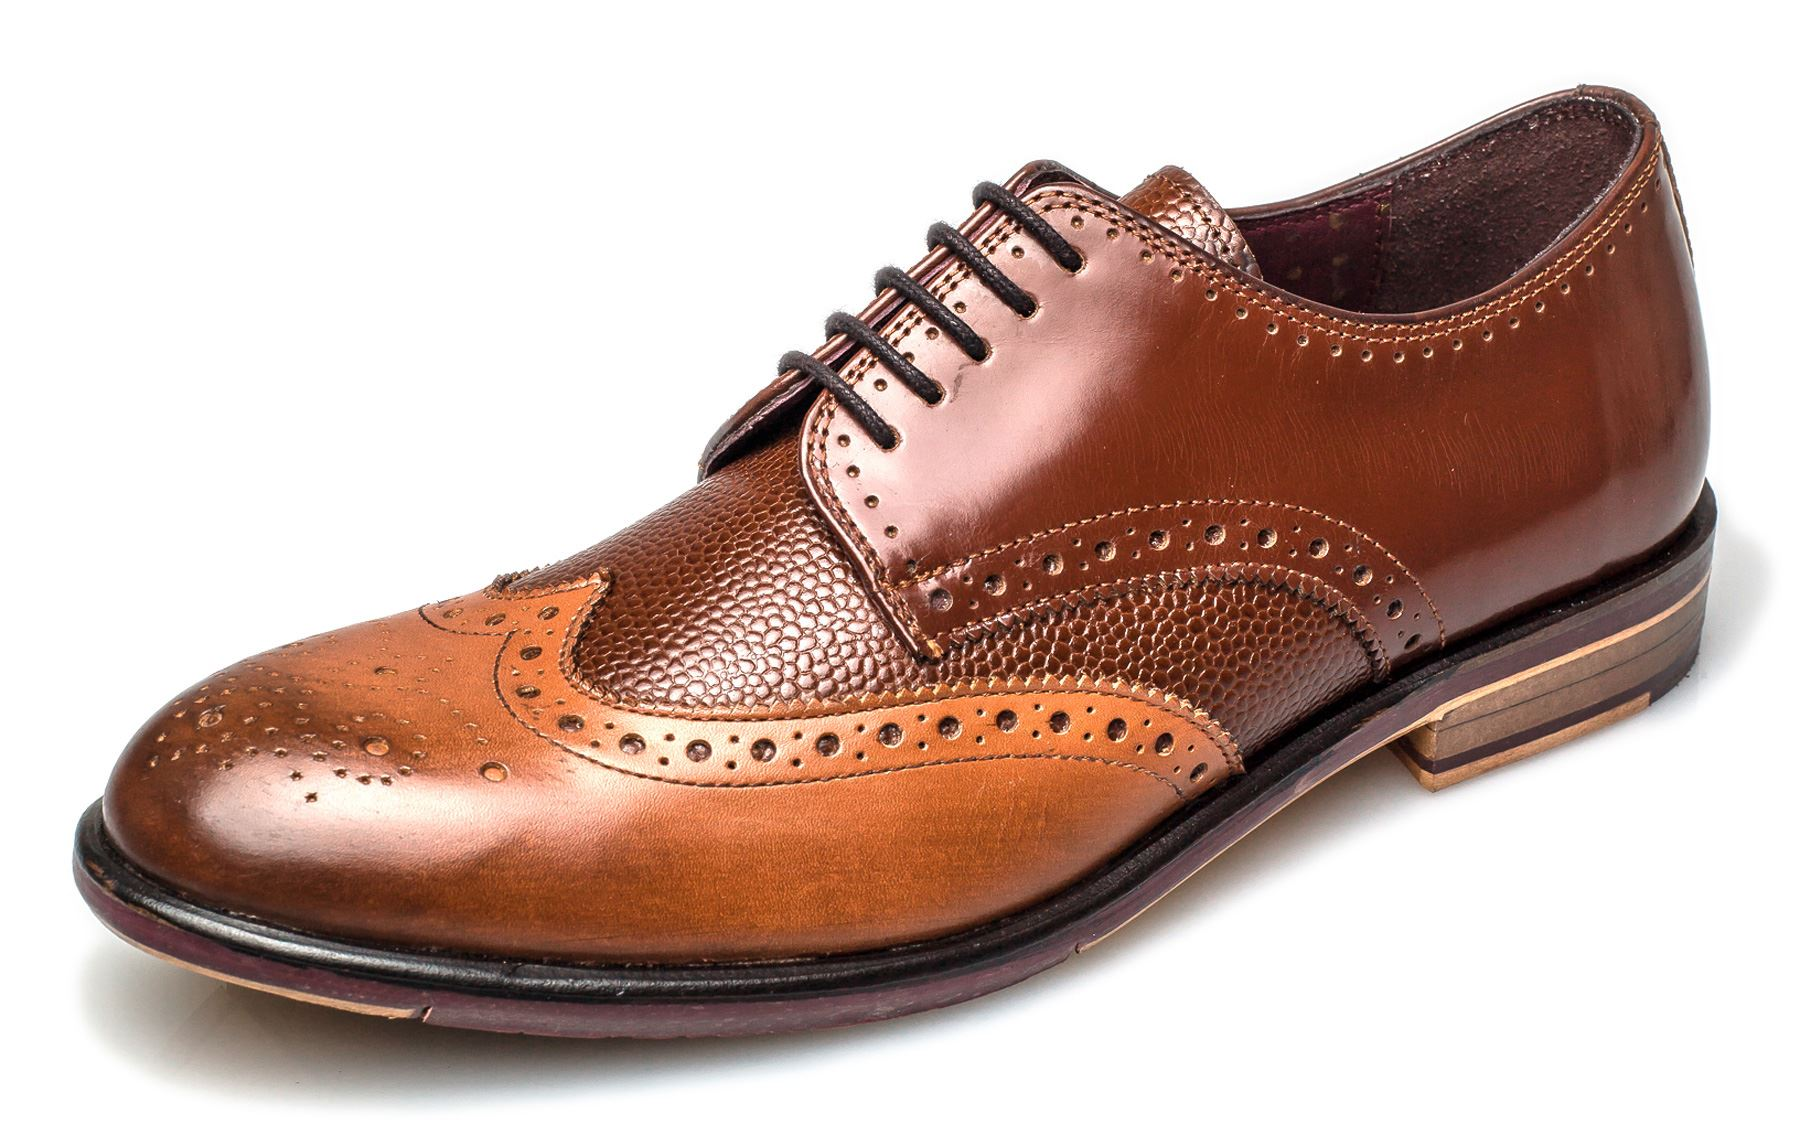 London Brogues Uomo Lincoln 5 Eye  Uomo Brogues Leder Sole Derby Schuhes 833f81